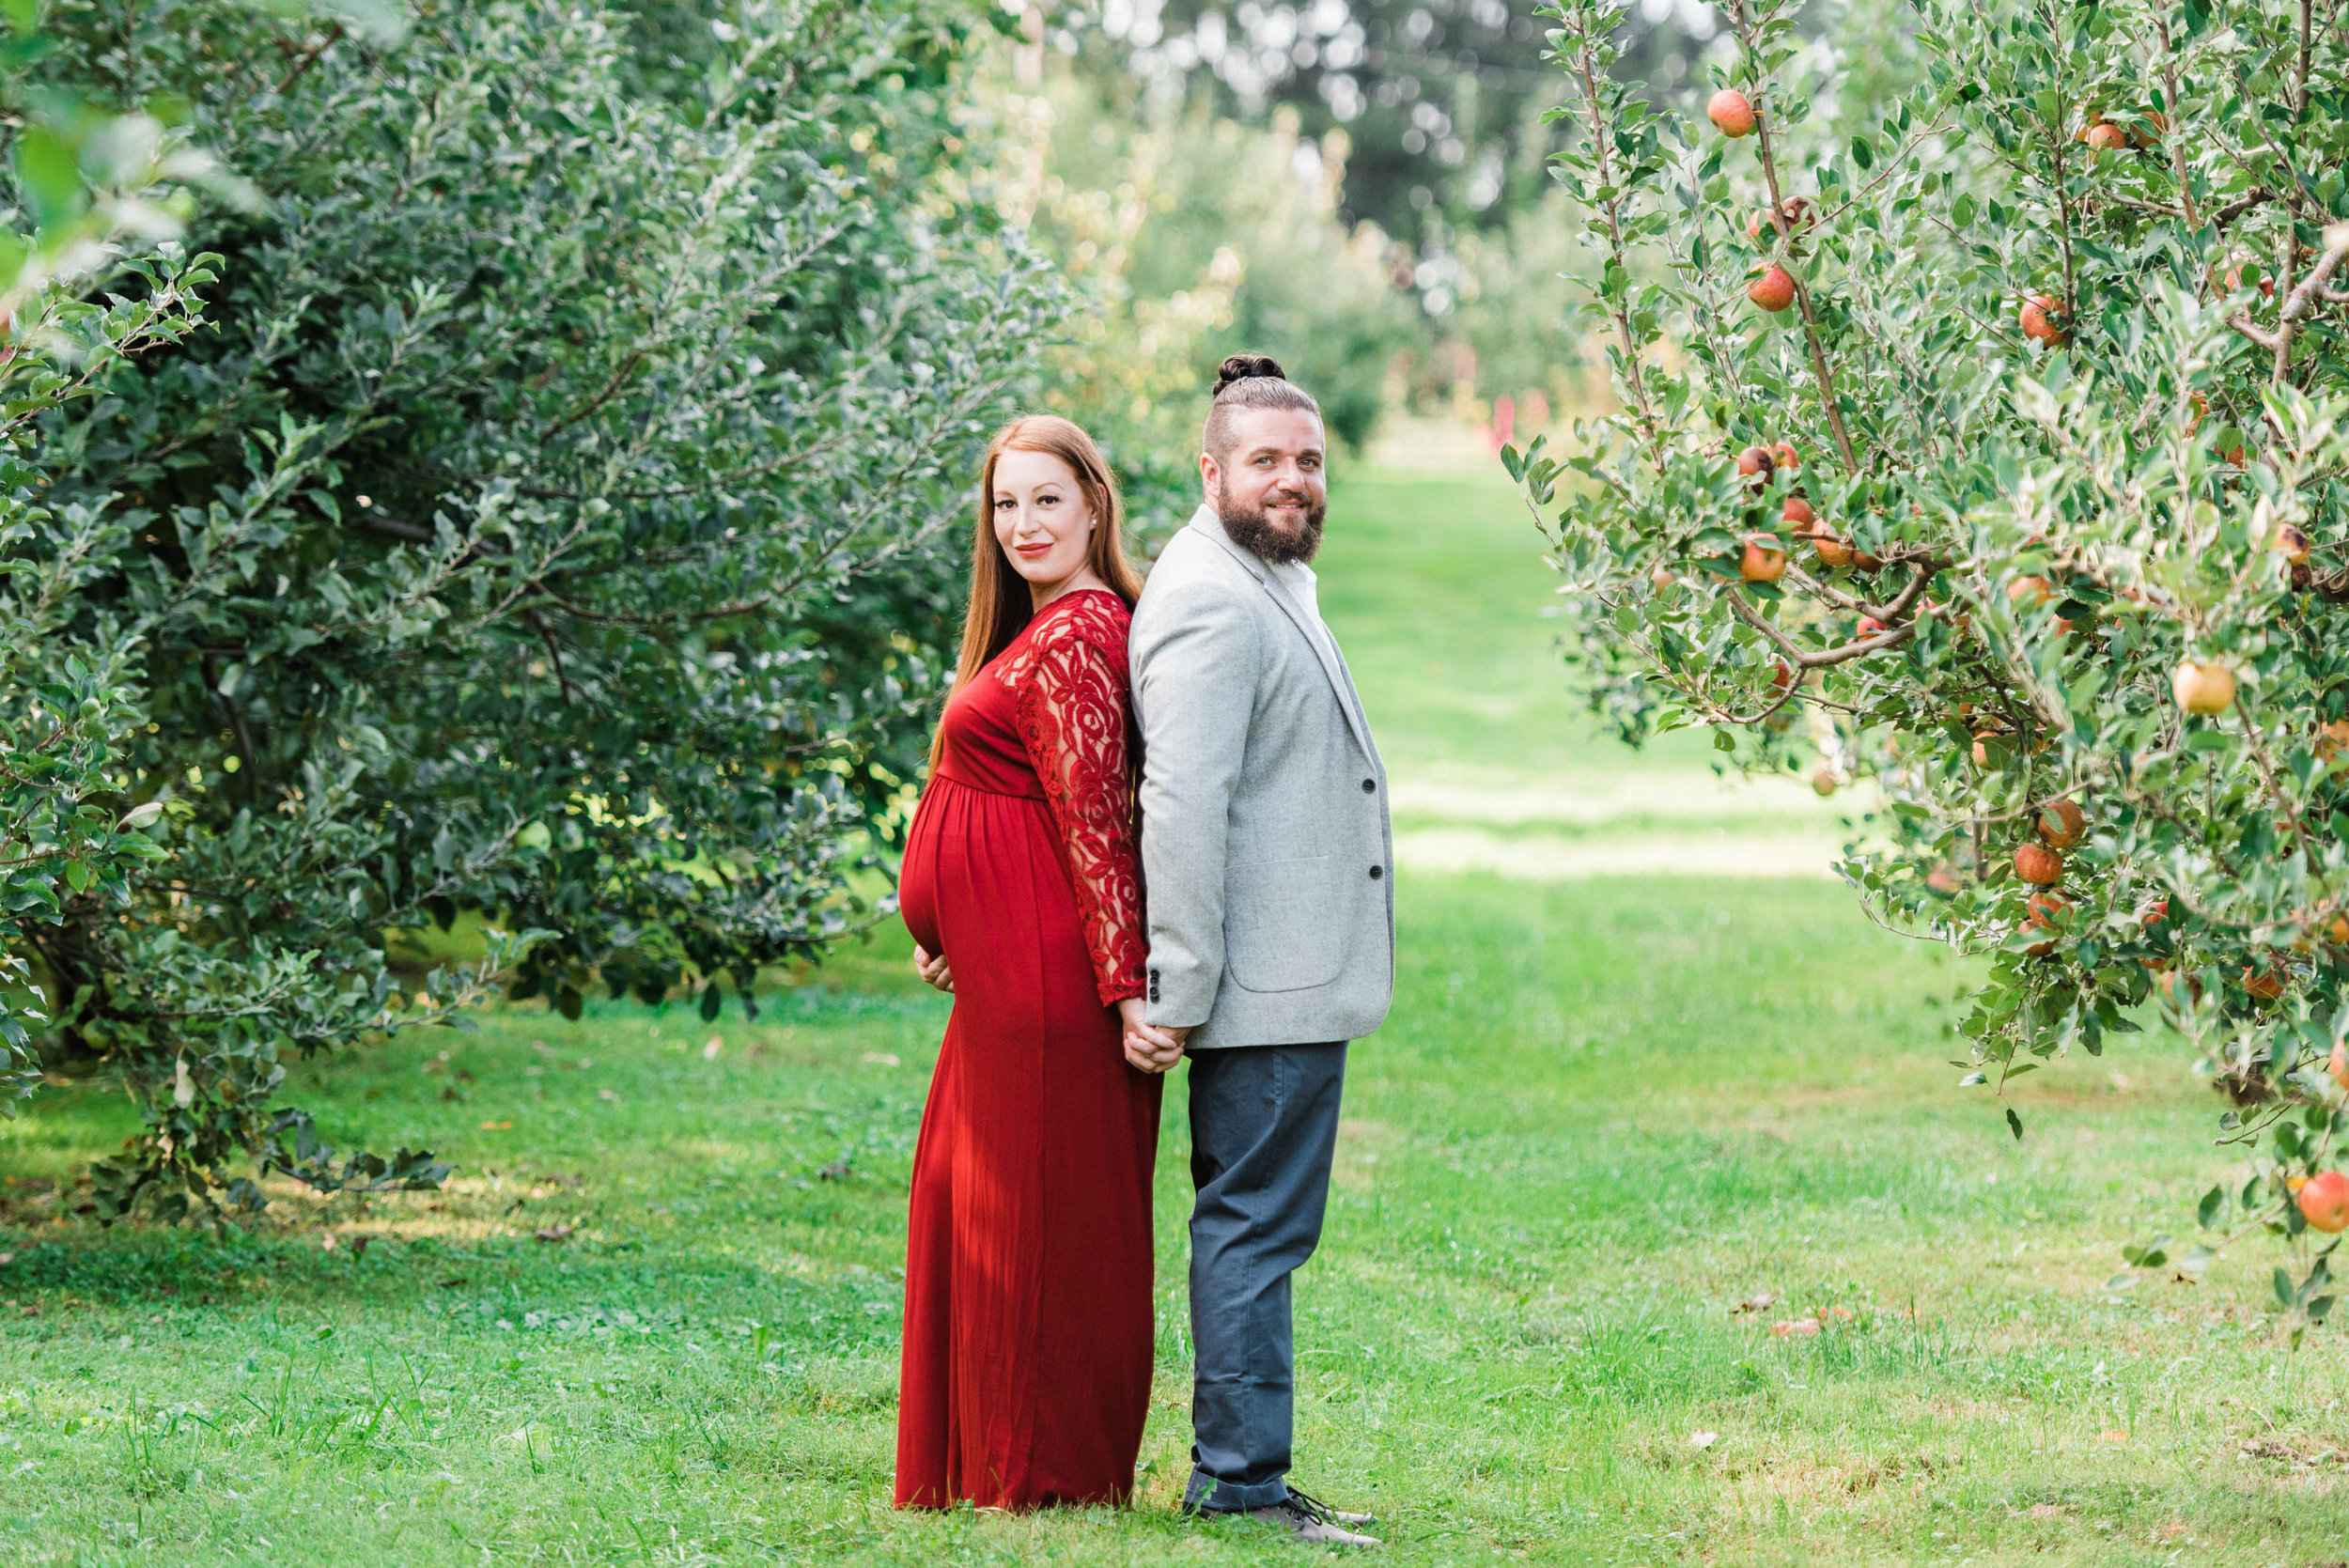 pittsburgh-maternity-photographers-winery-apple-orchard-session_28.jpg